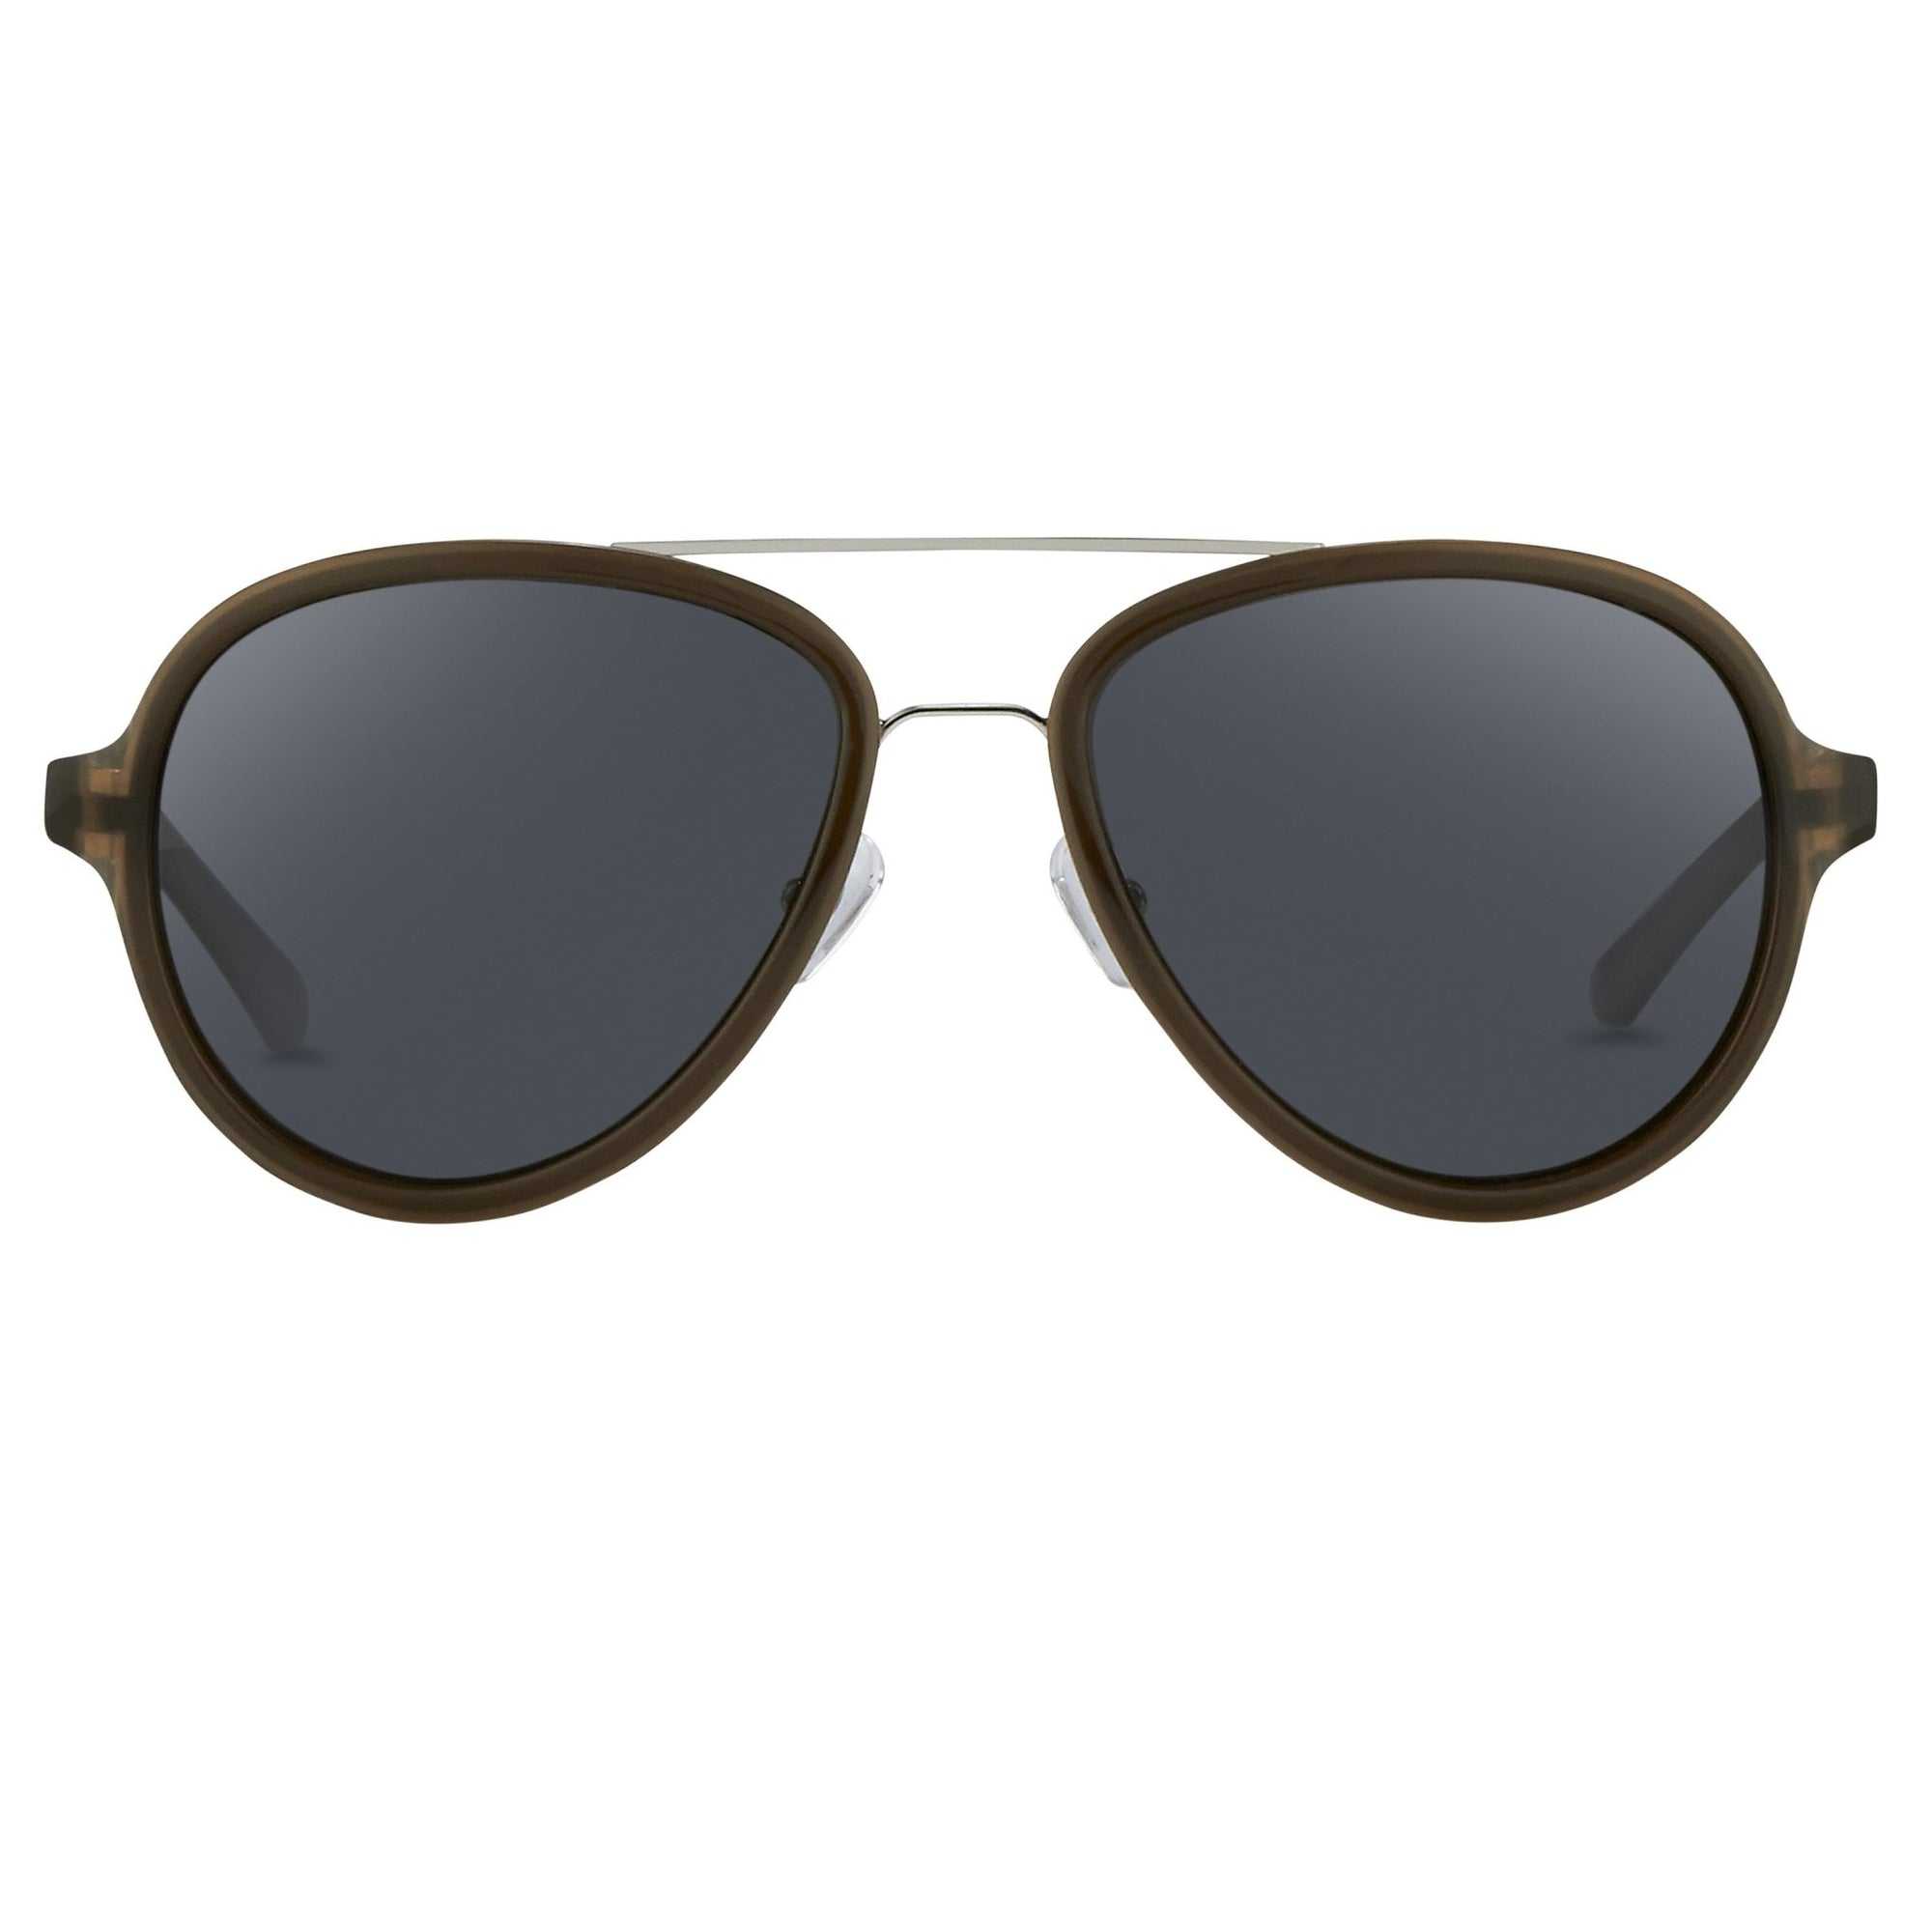 Phillip Lim Sunglasses Brown Silver and Fog Green Lenses Category 3 - PL16C32SUN - Watches & Crystals